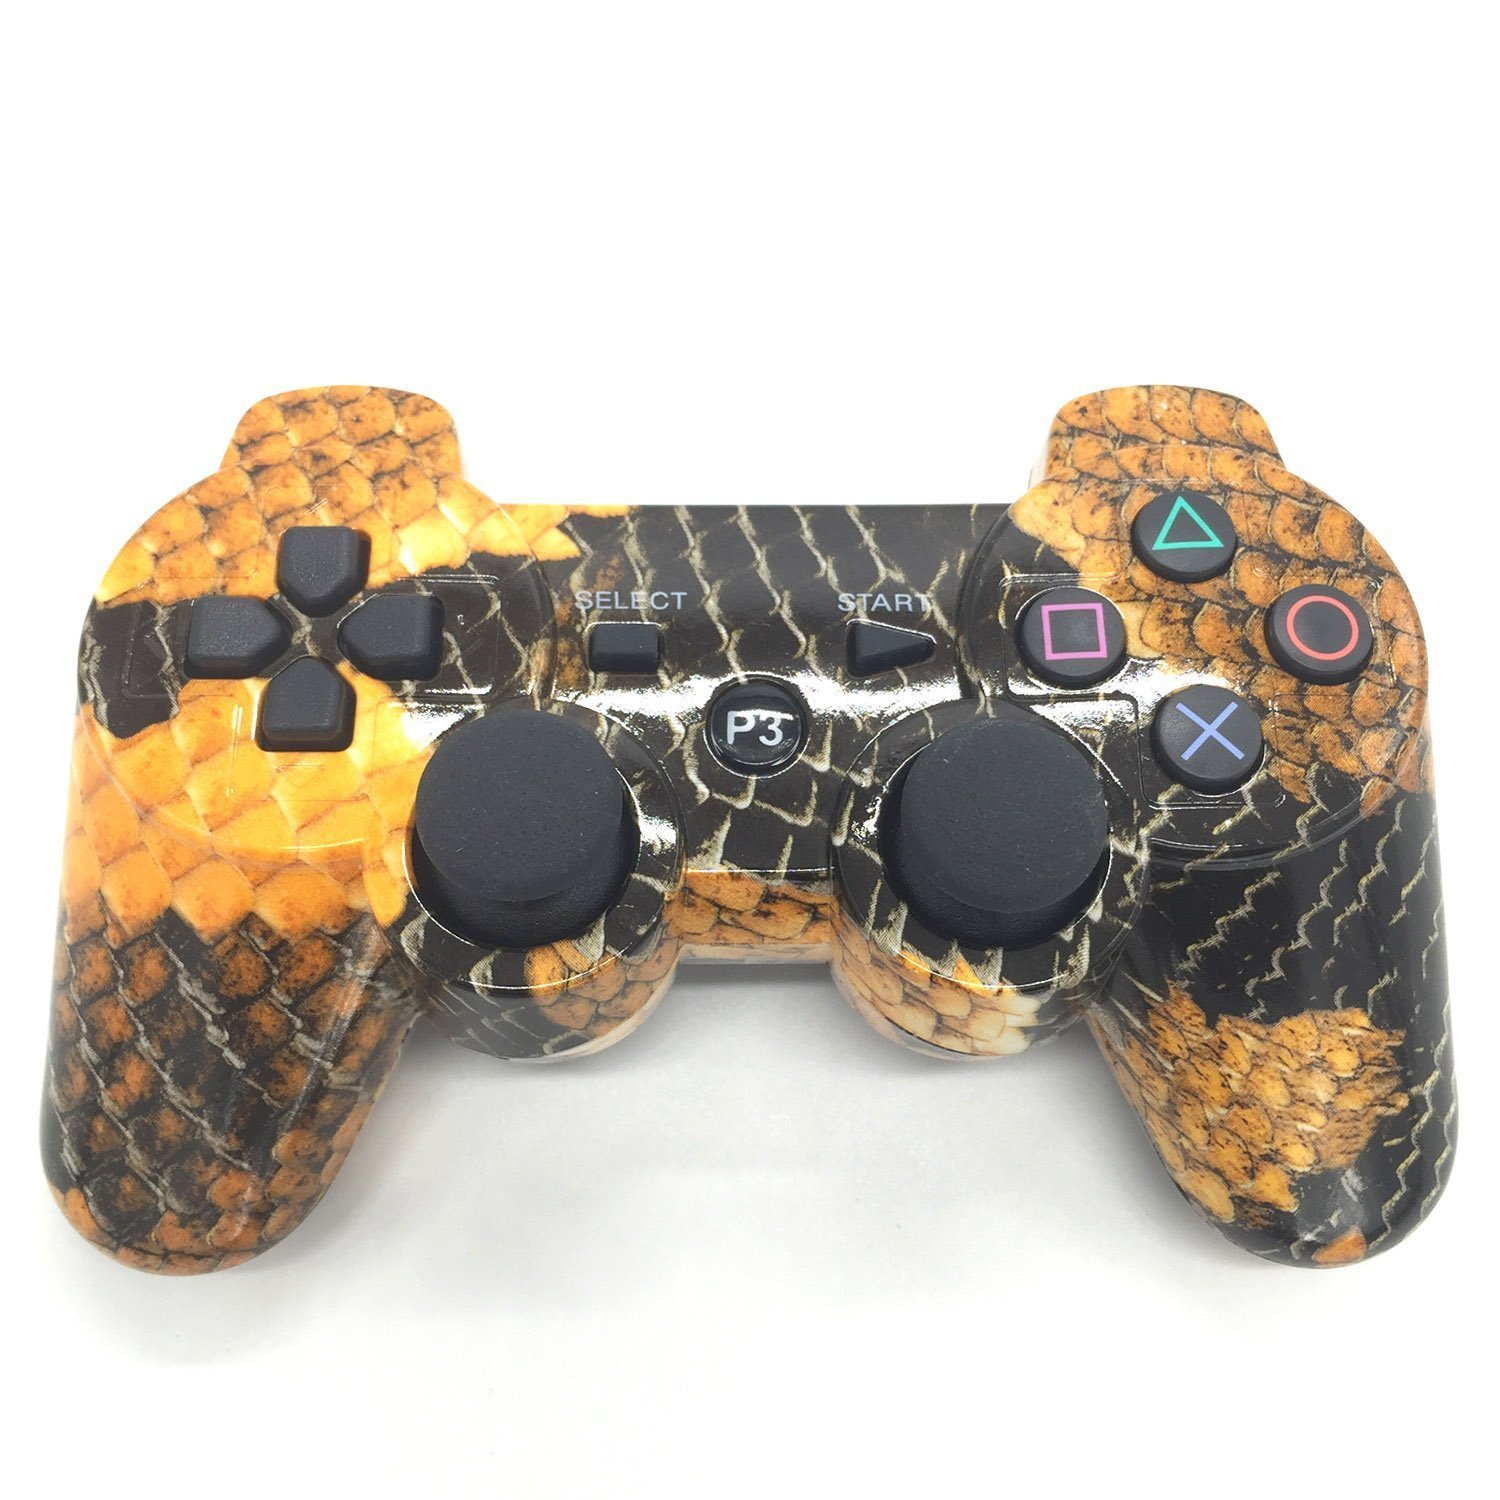 Dualshock 3 Wireless PS3 Controller for Sony PS3 - Snakeskin